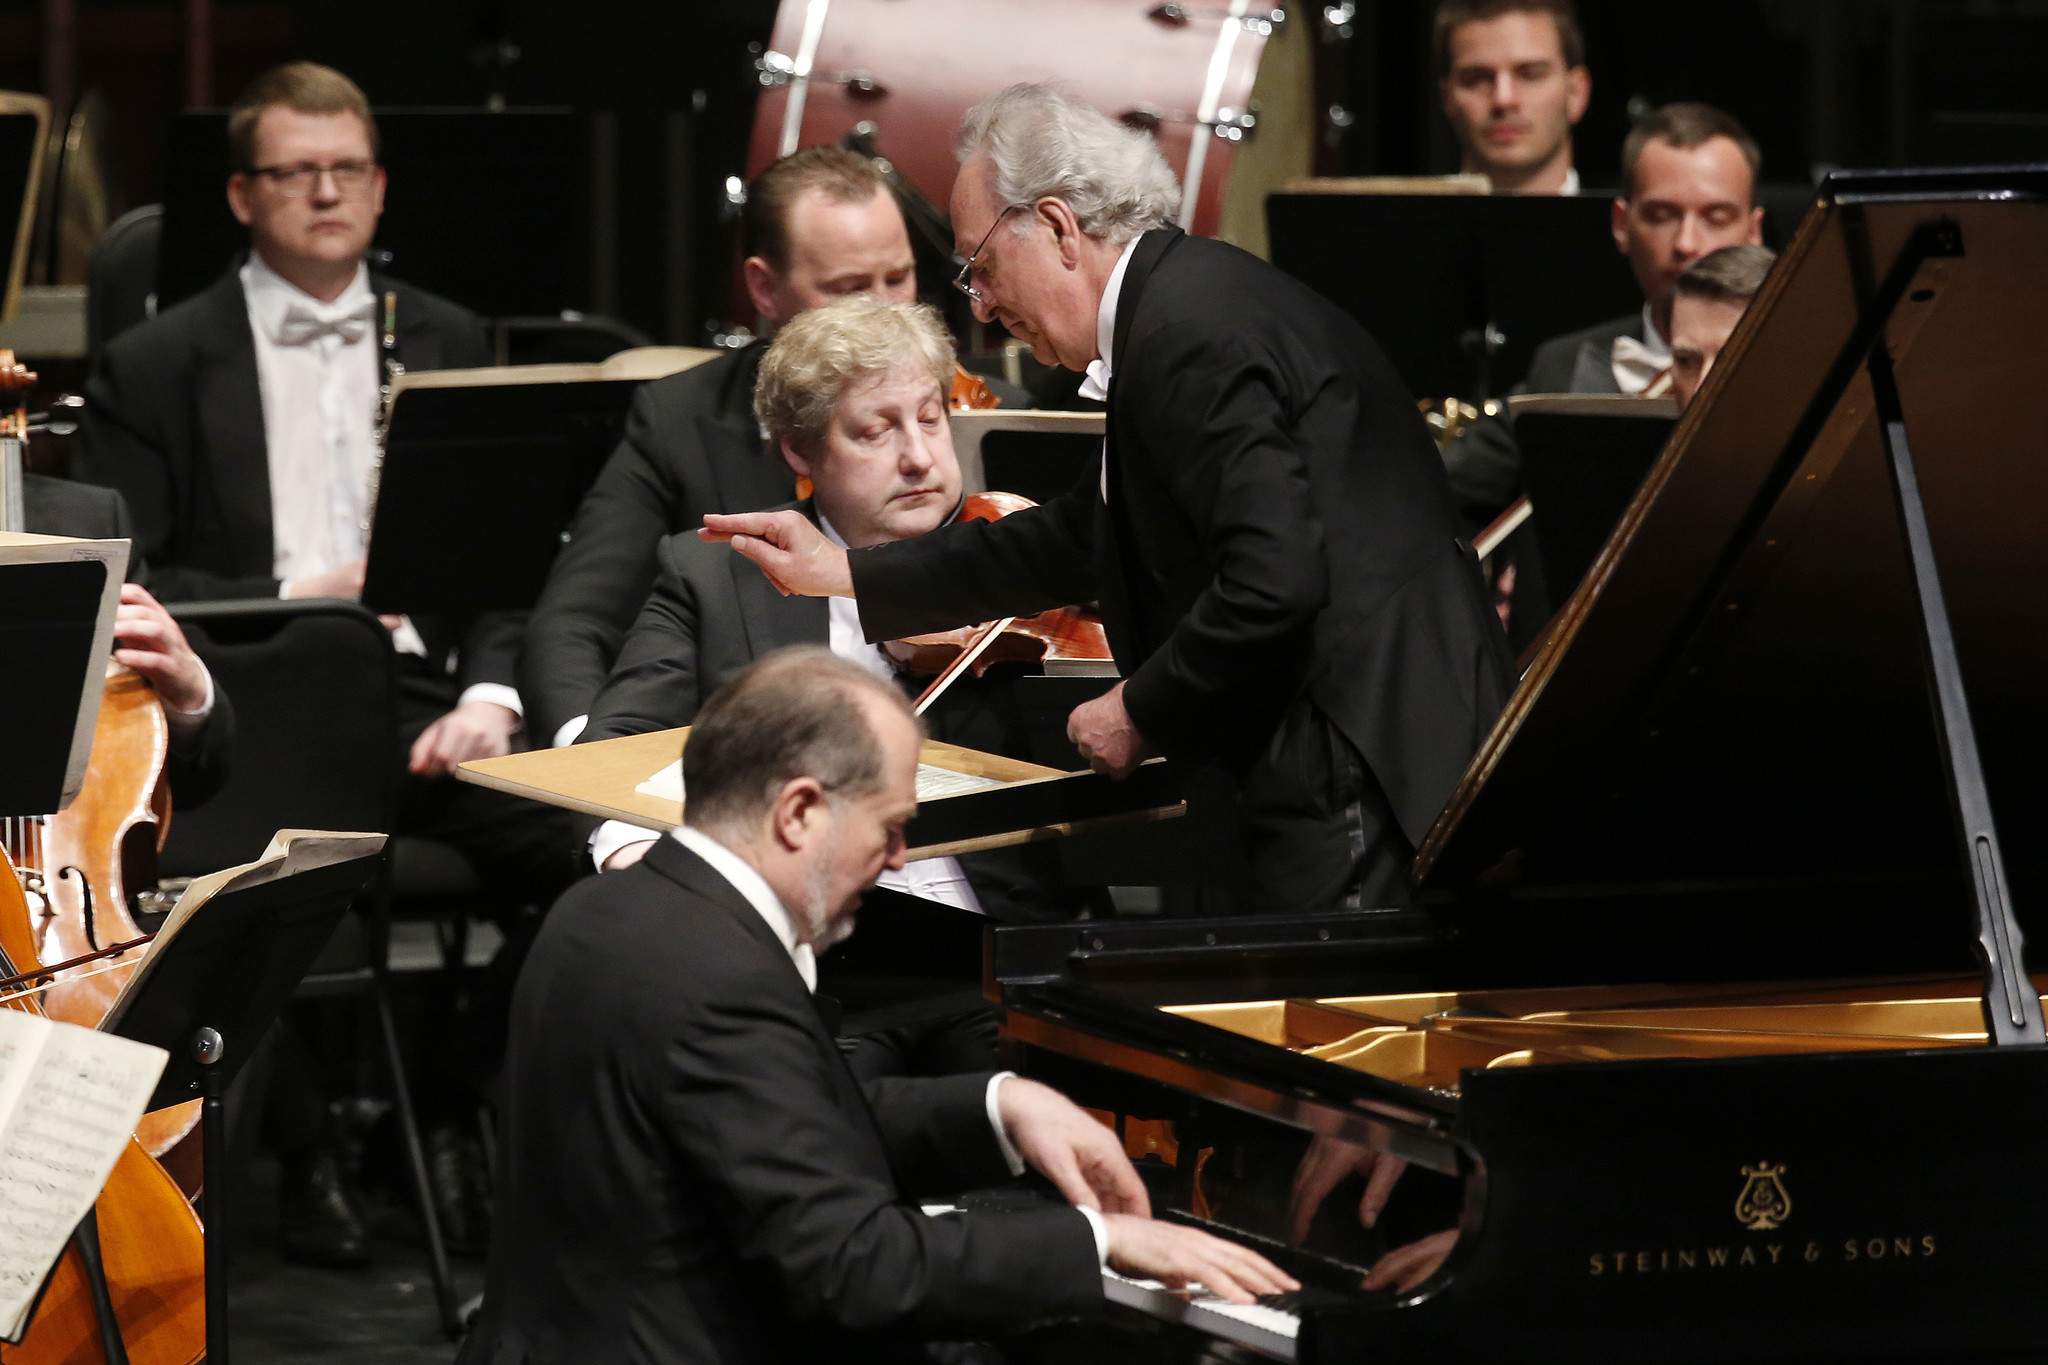 Yuri Temirkanov conducts the St. Petersburg Philharmonic with piano soloist Garrick Ohlsson.